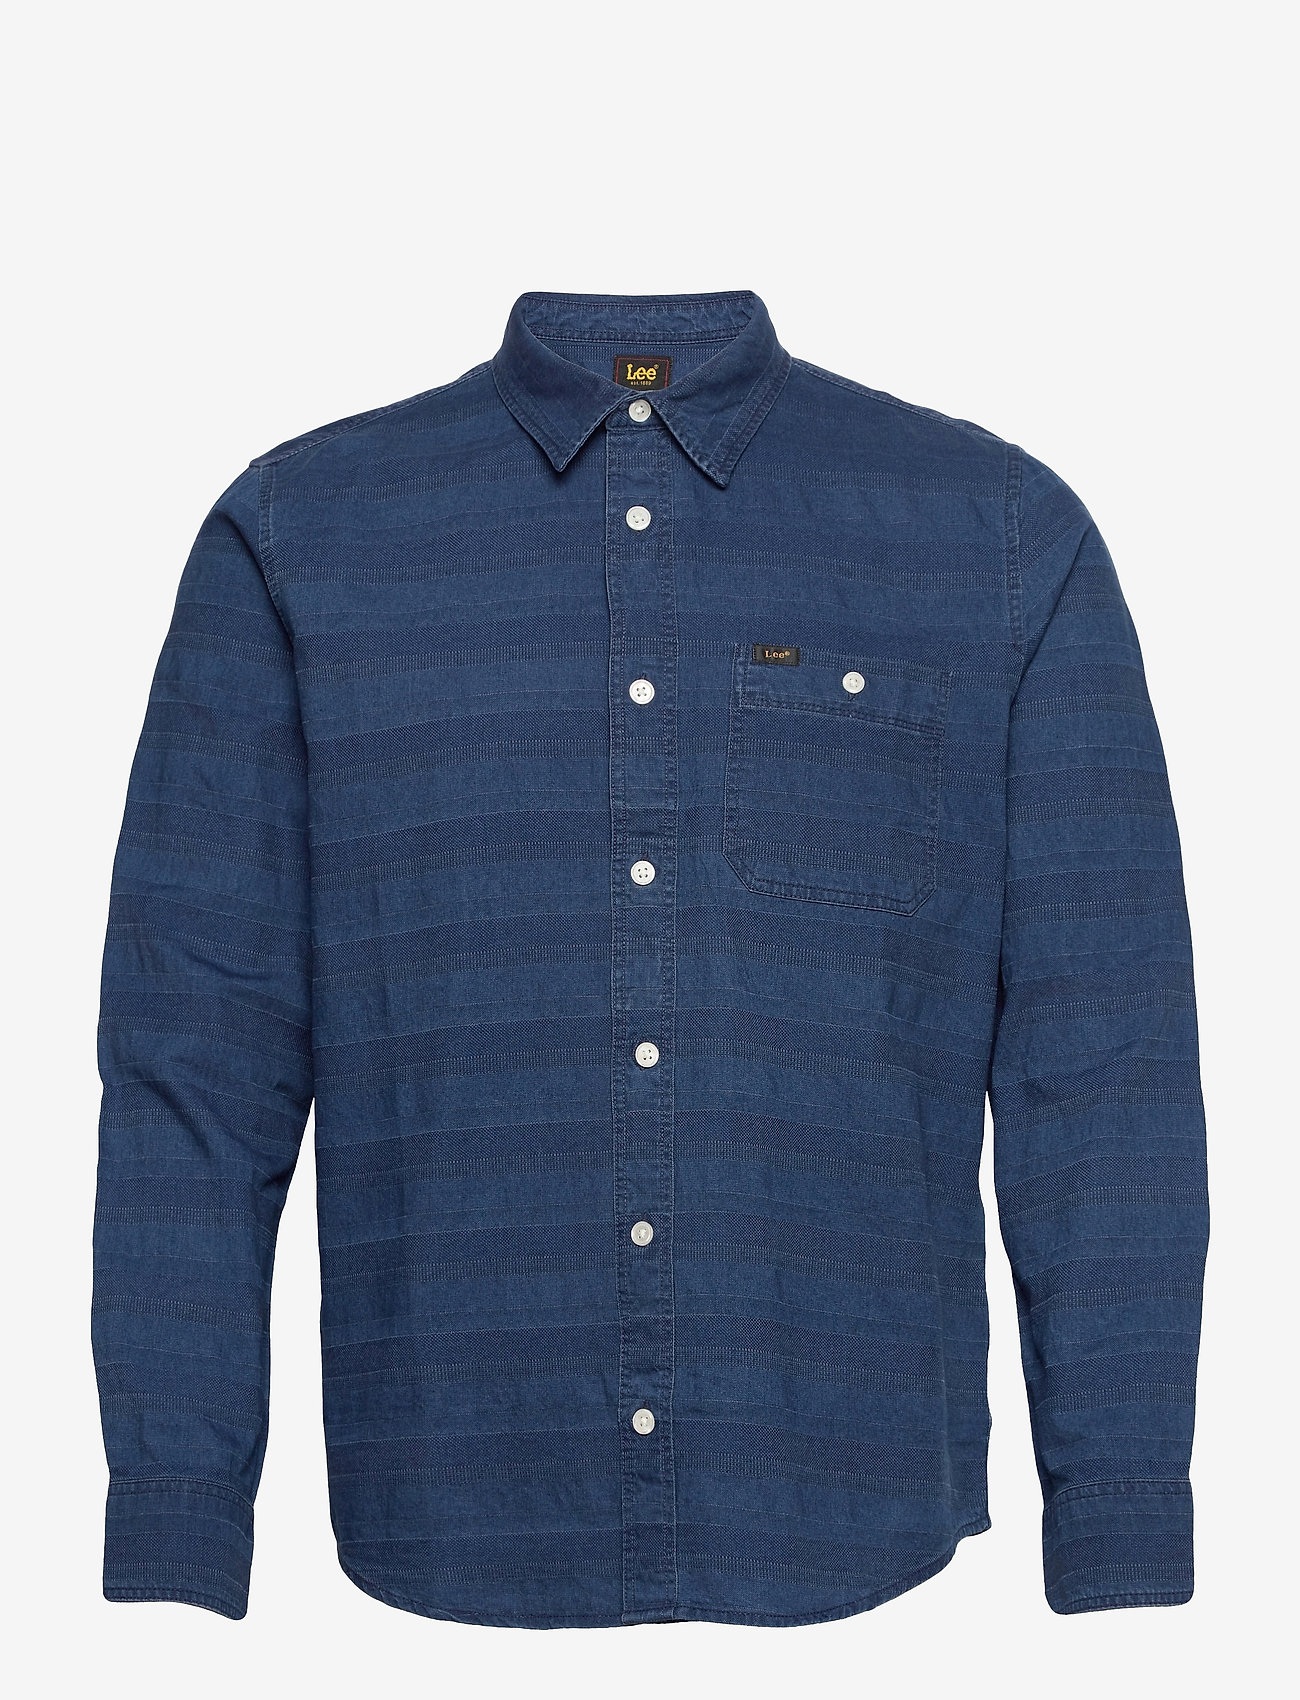 Lee Jeans - LEE ONE POCKET SHIRT - casual shirts - washed blue - 0